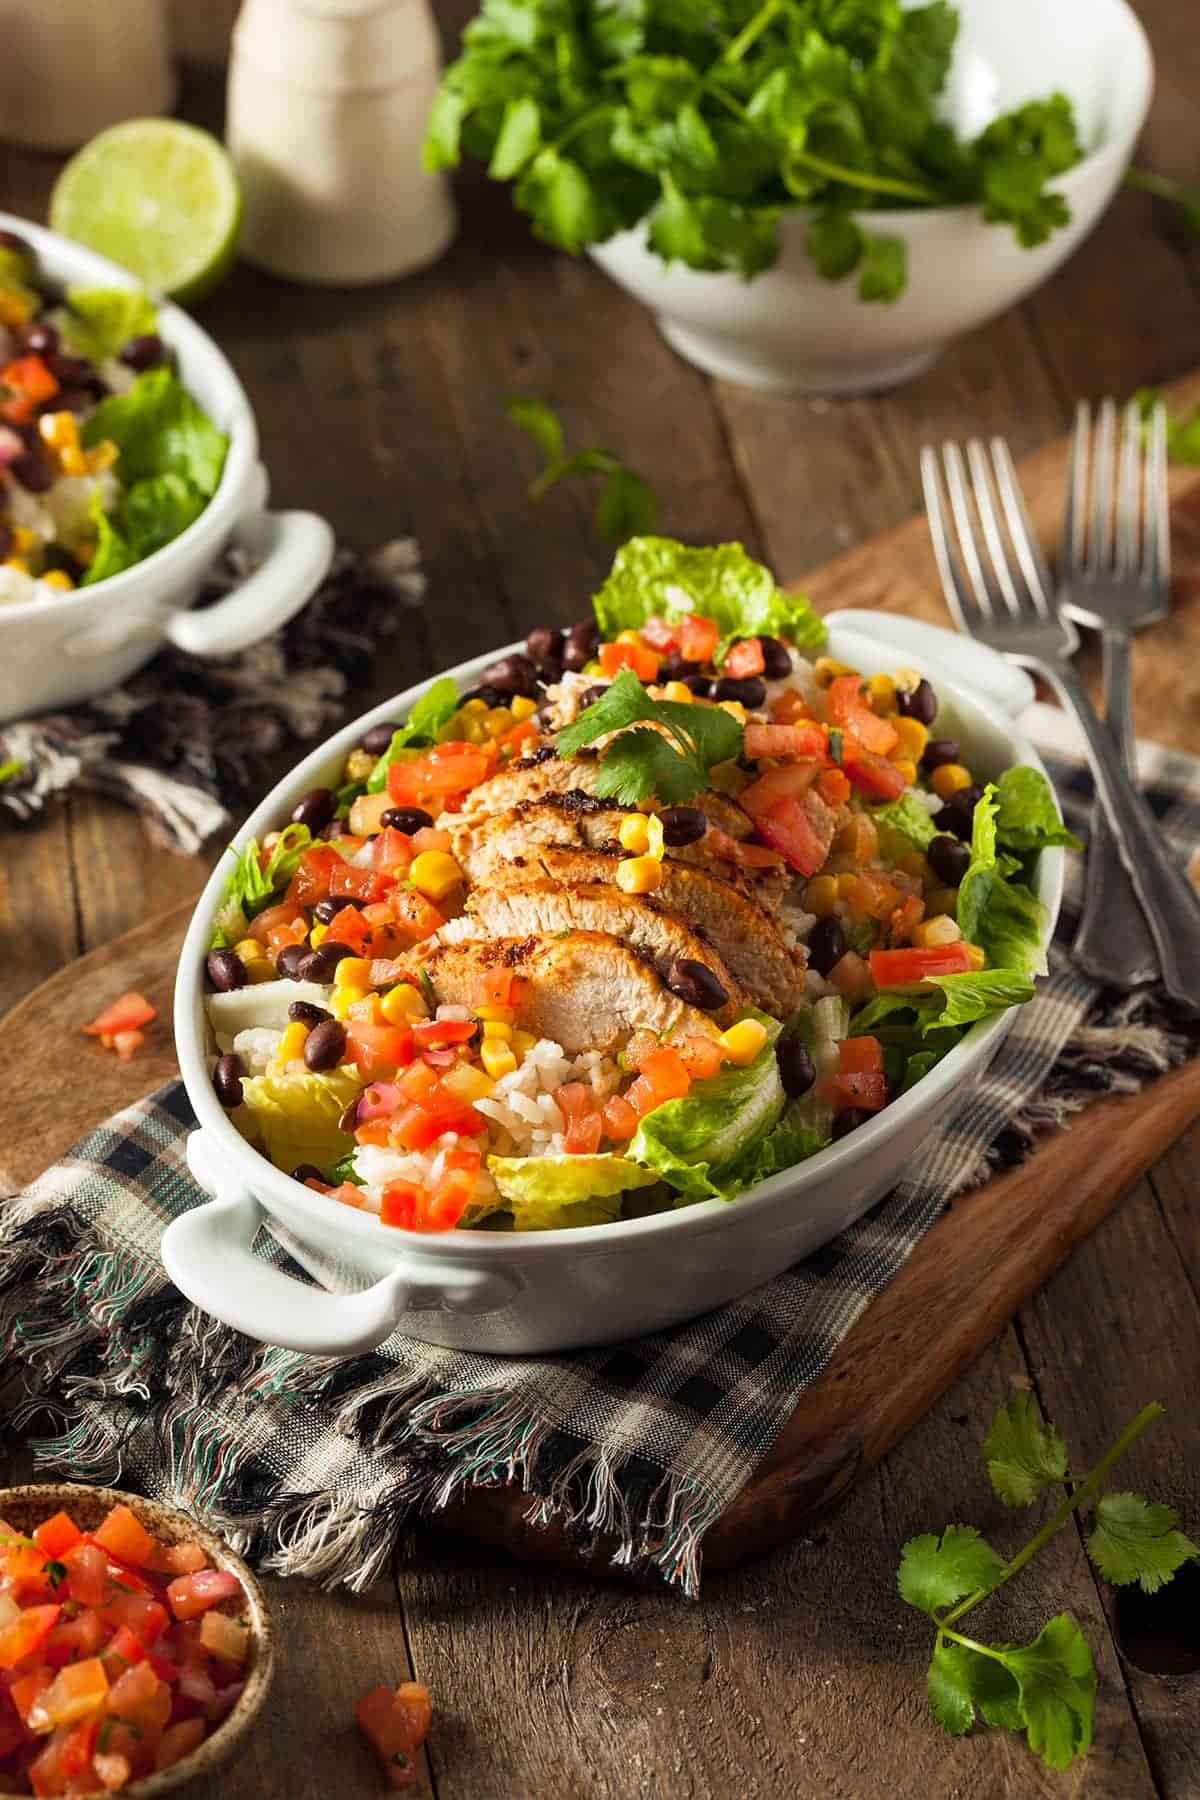 Chicken burrito bowl with ingredients and topping ideas.